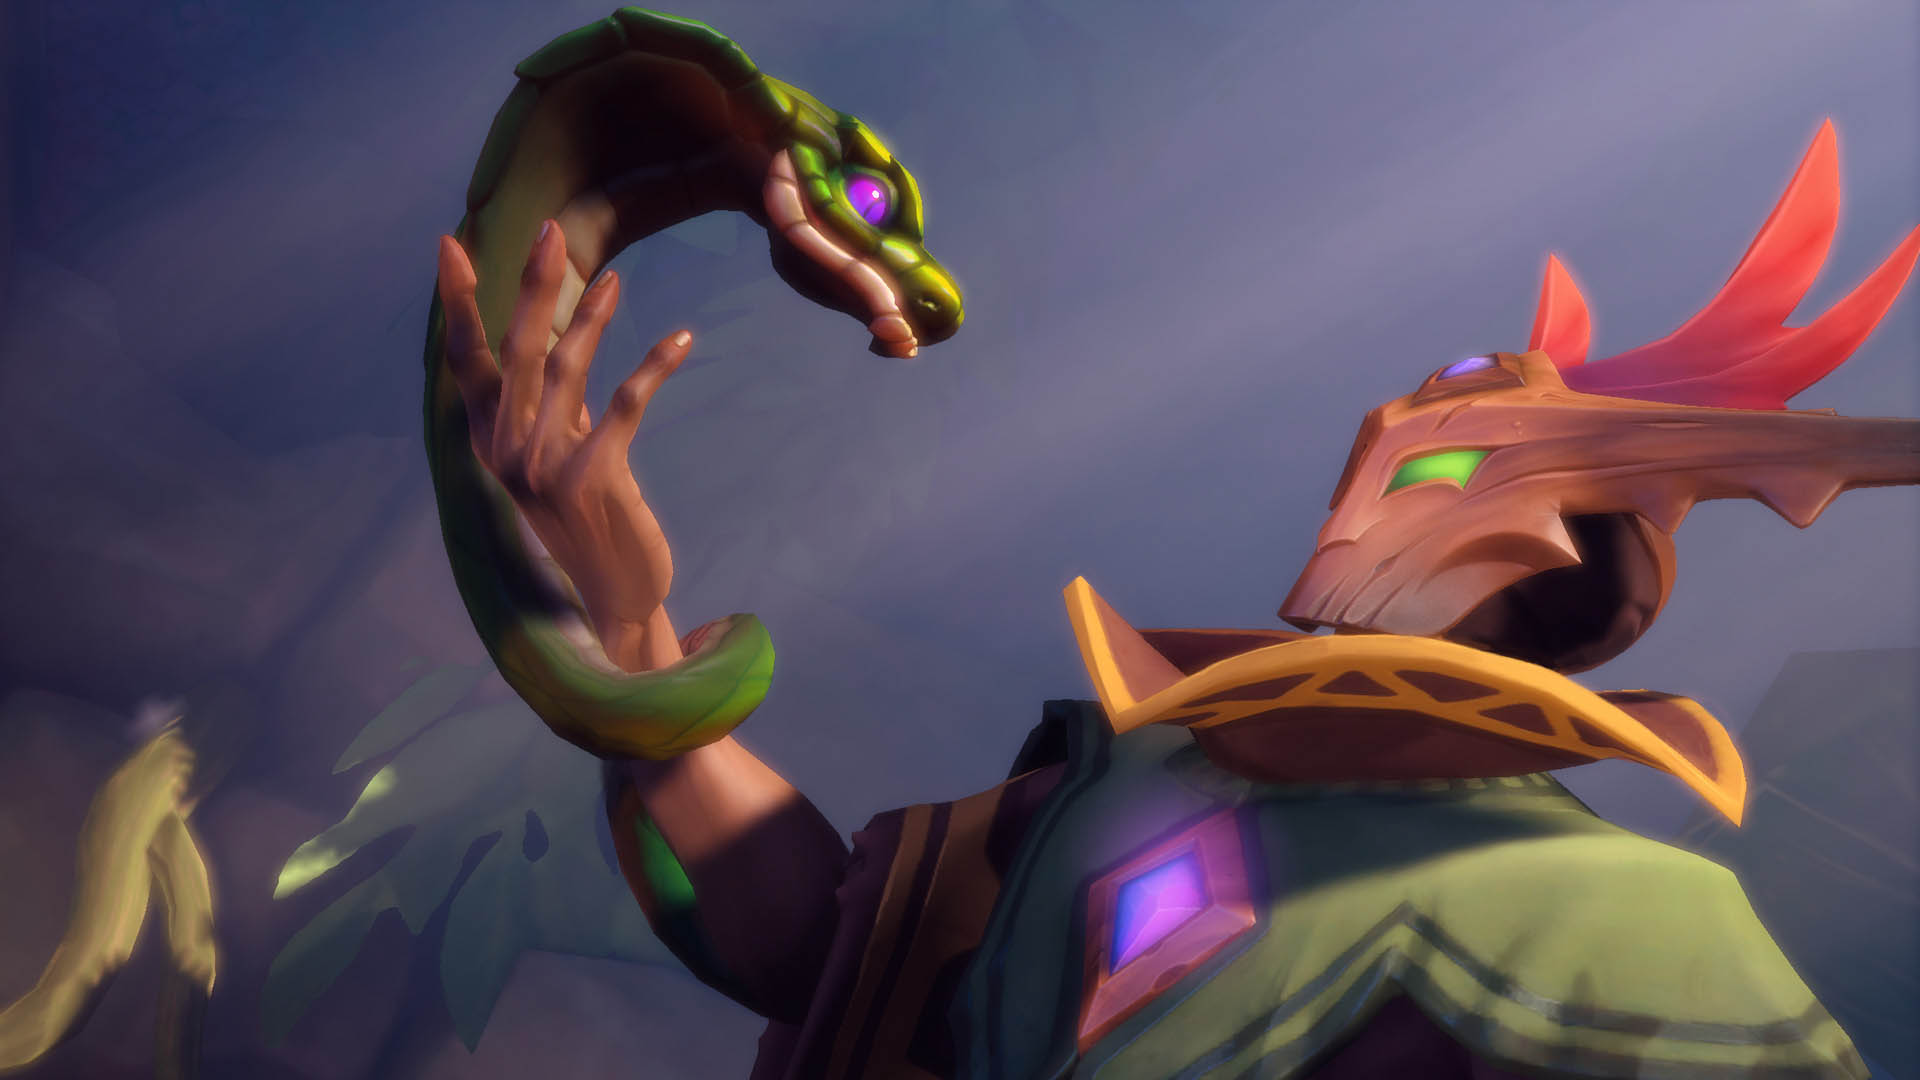 Paladins Evie Giveaway Free Codes The Escapist